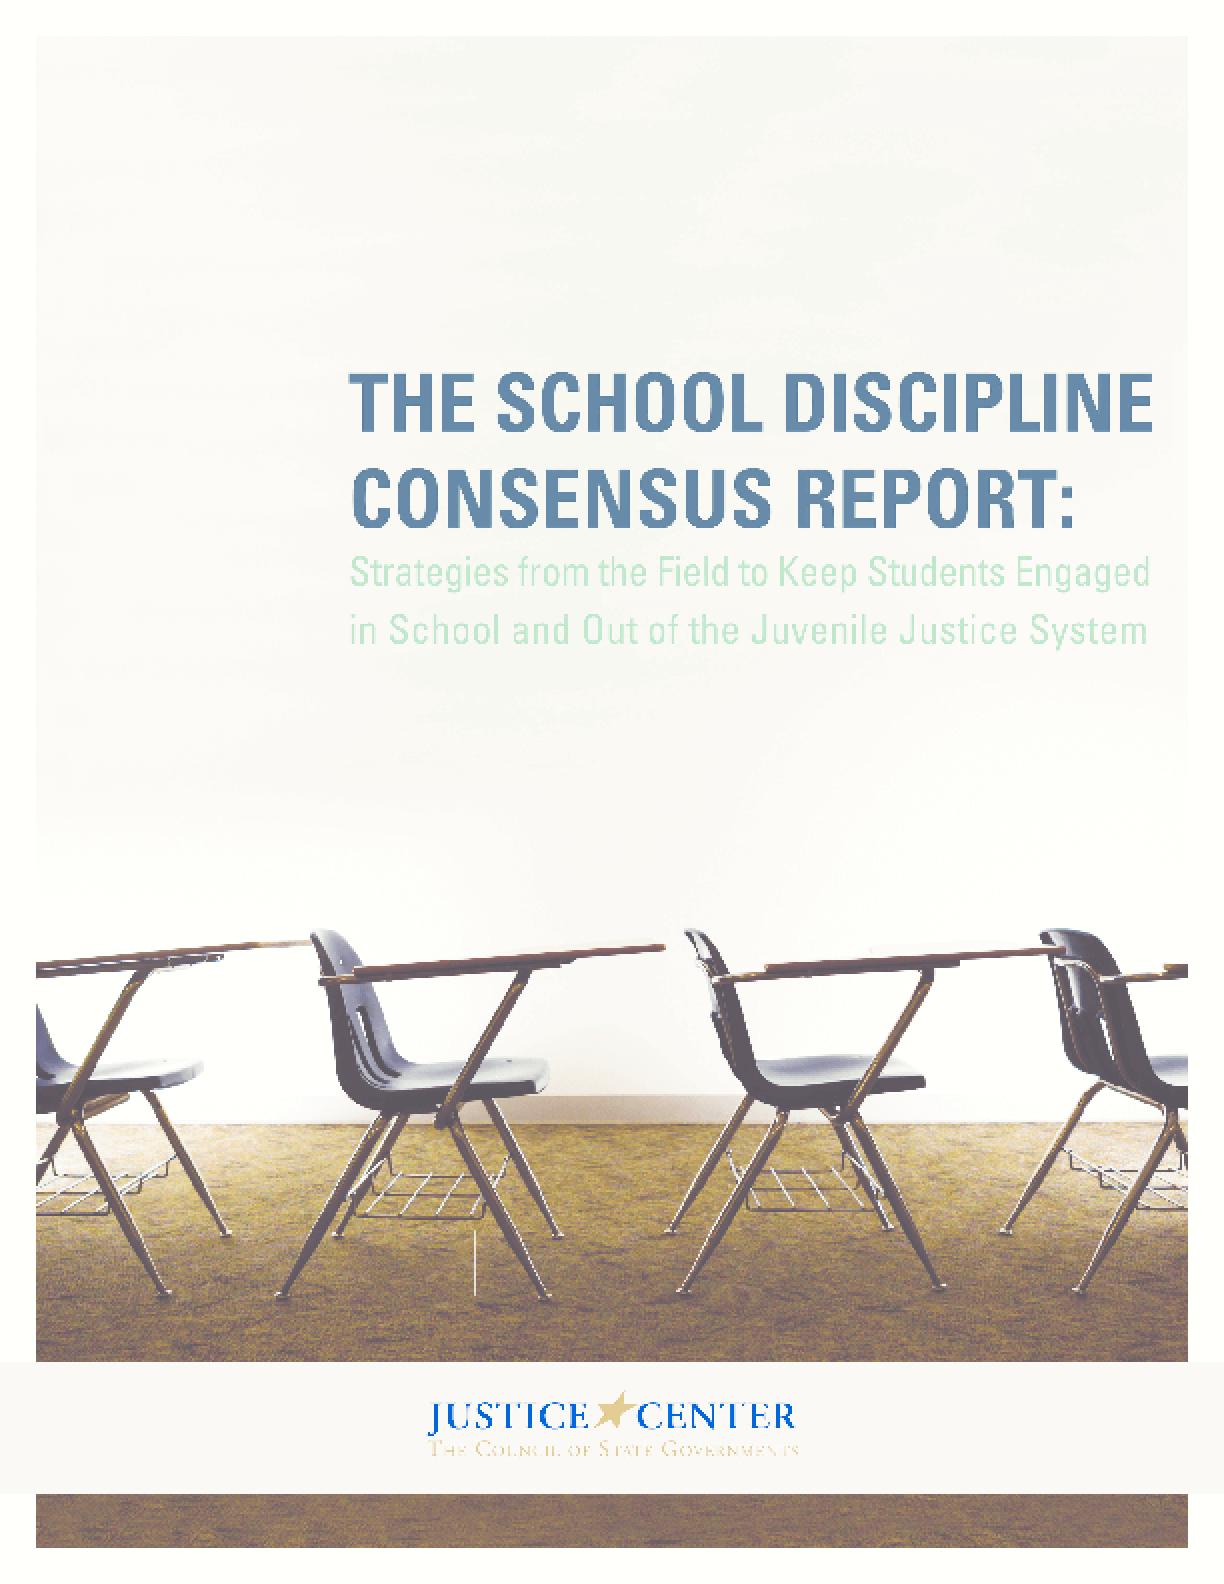 The School Discipline Consensus Report: Strategies from the Field to Keep Students Engaged in School and Out of the Juvenile Justice System